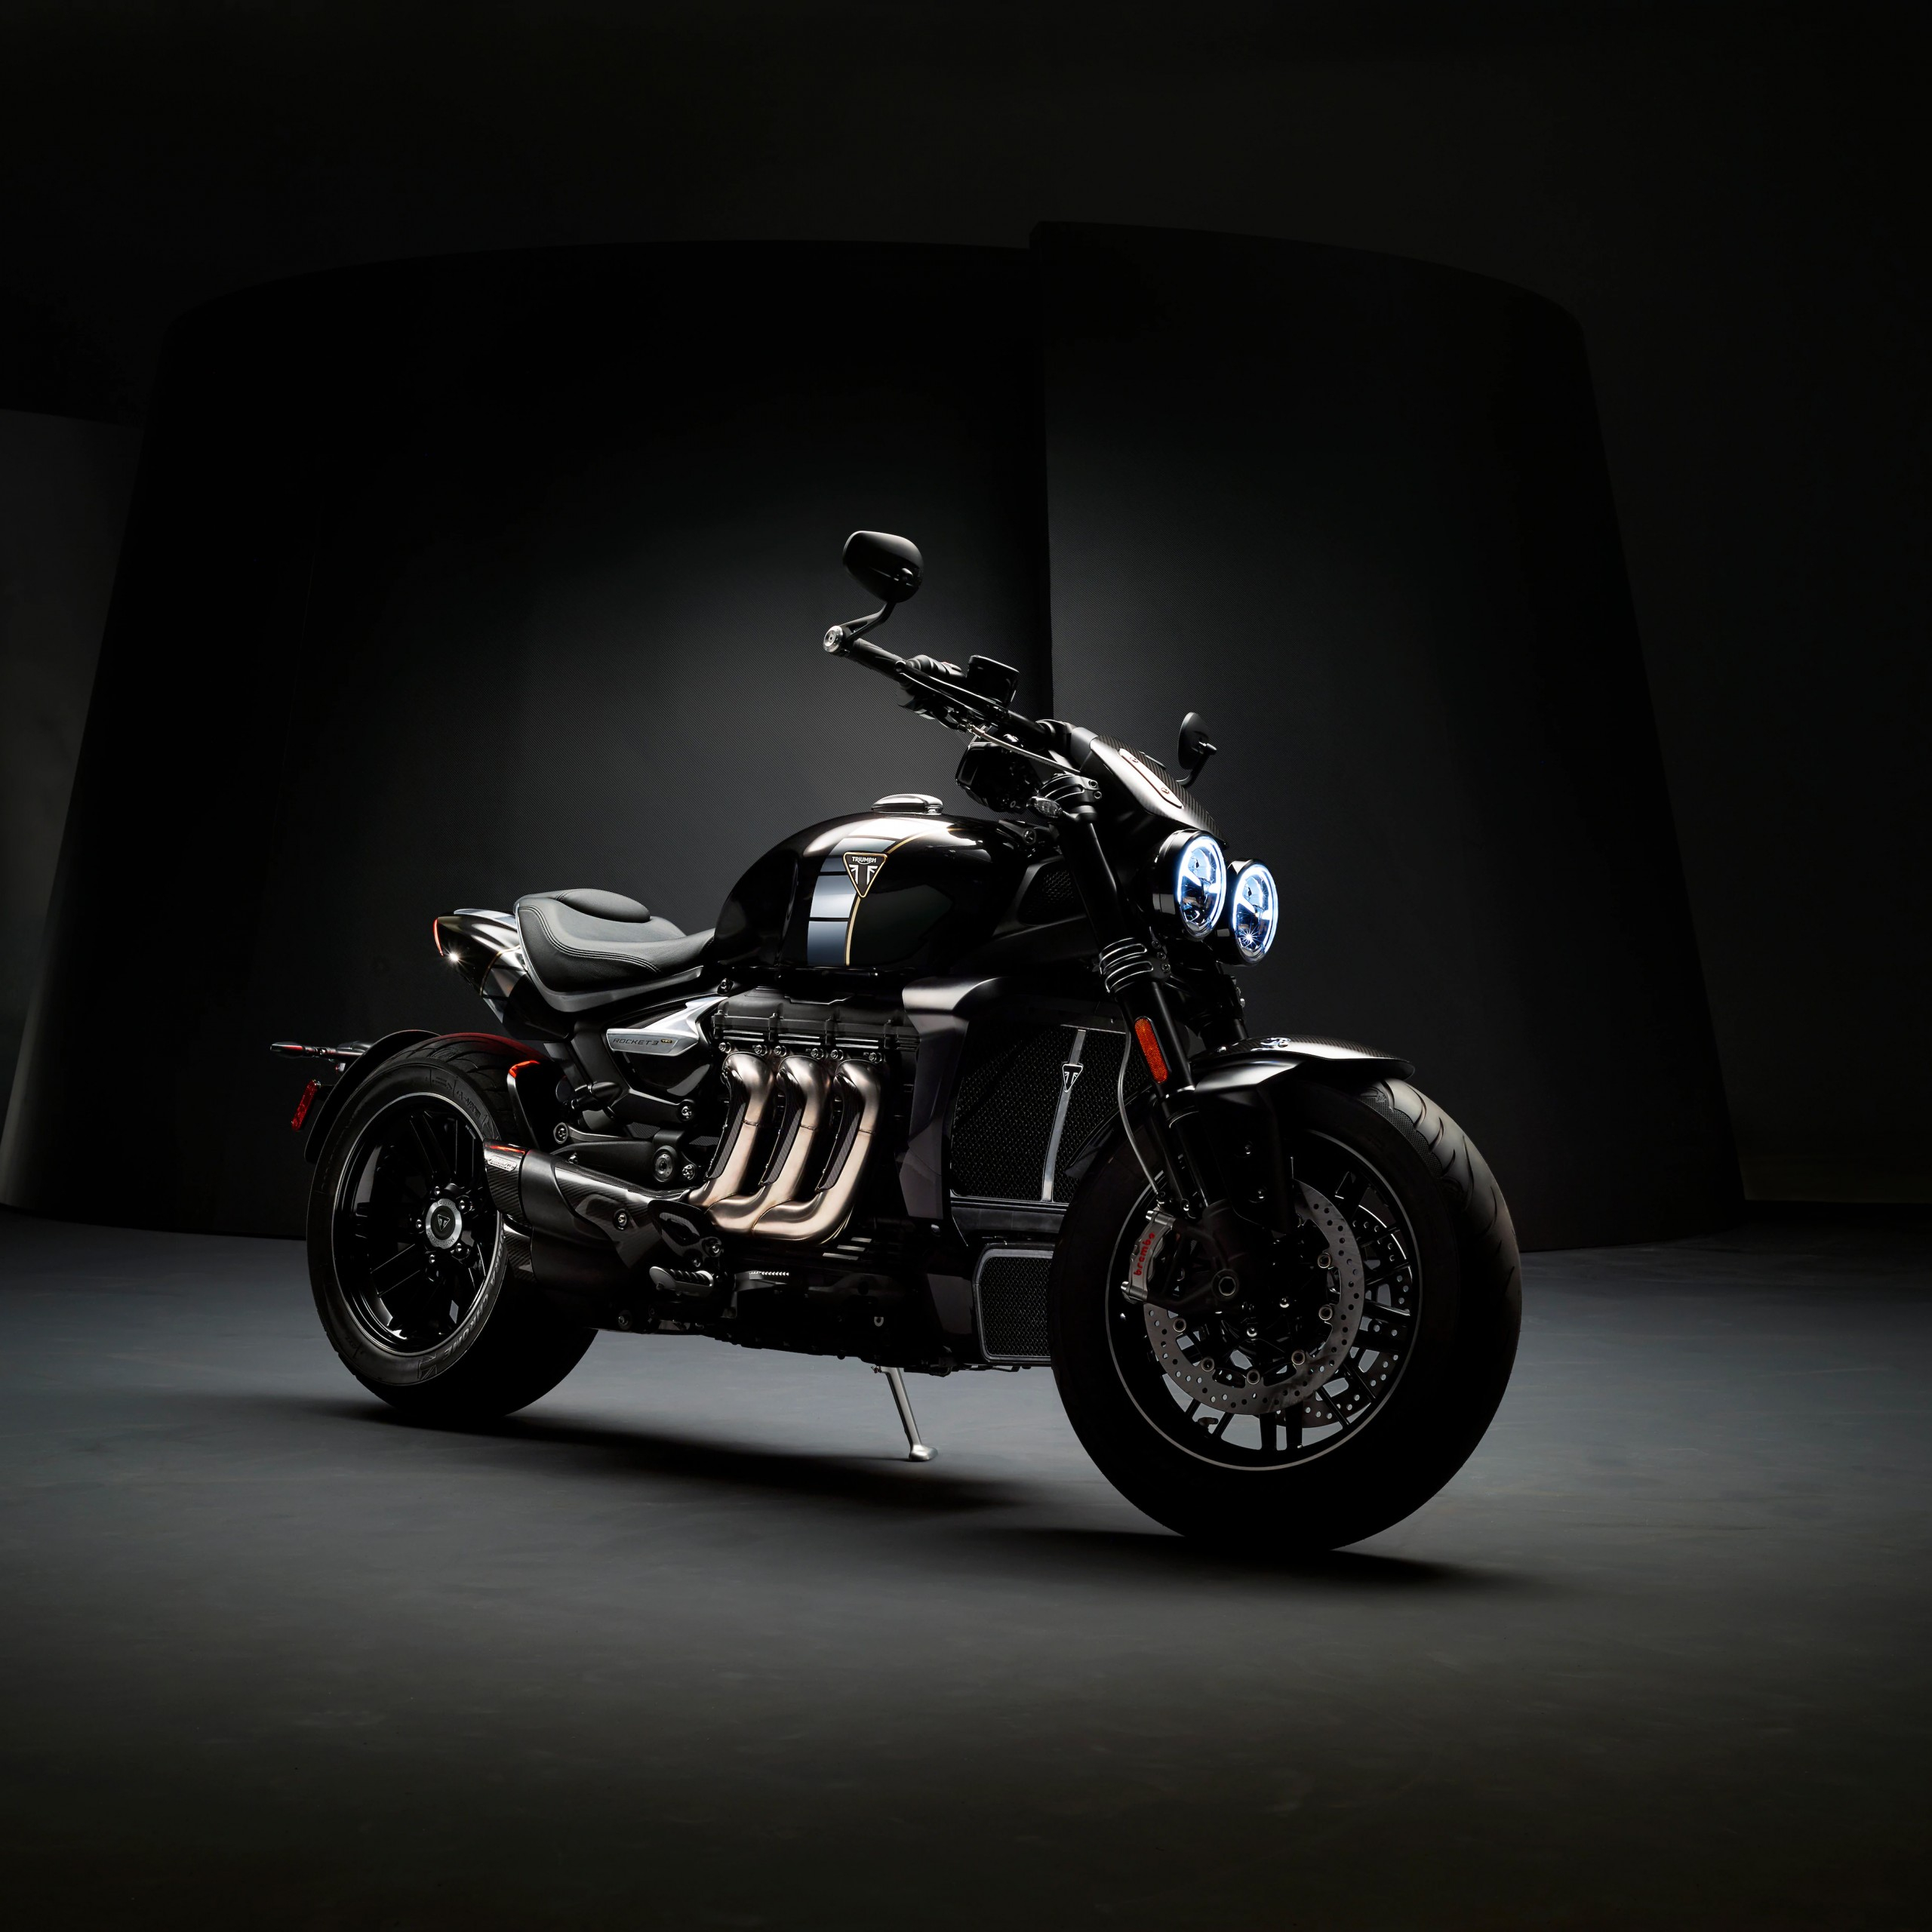 triumph rocket 3 tfc cafe racer 2020 dark background 5k 3397